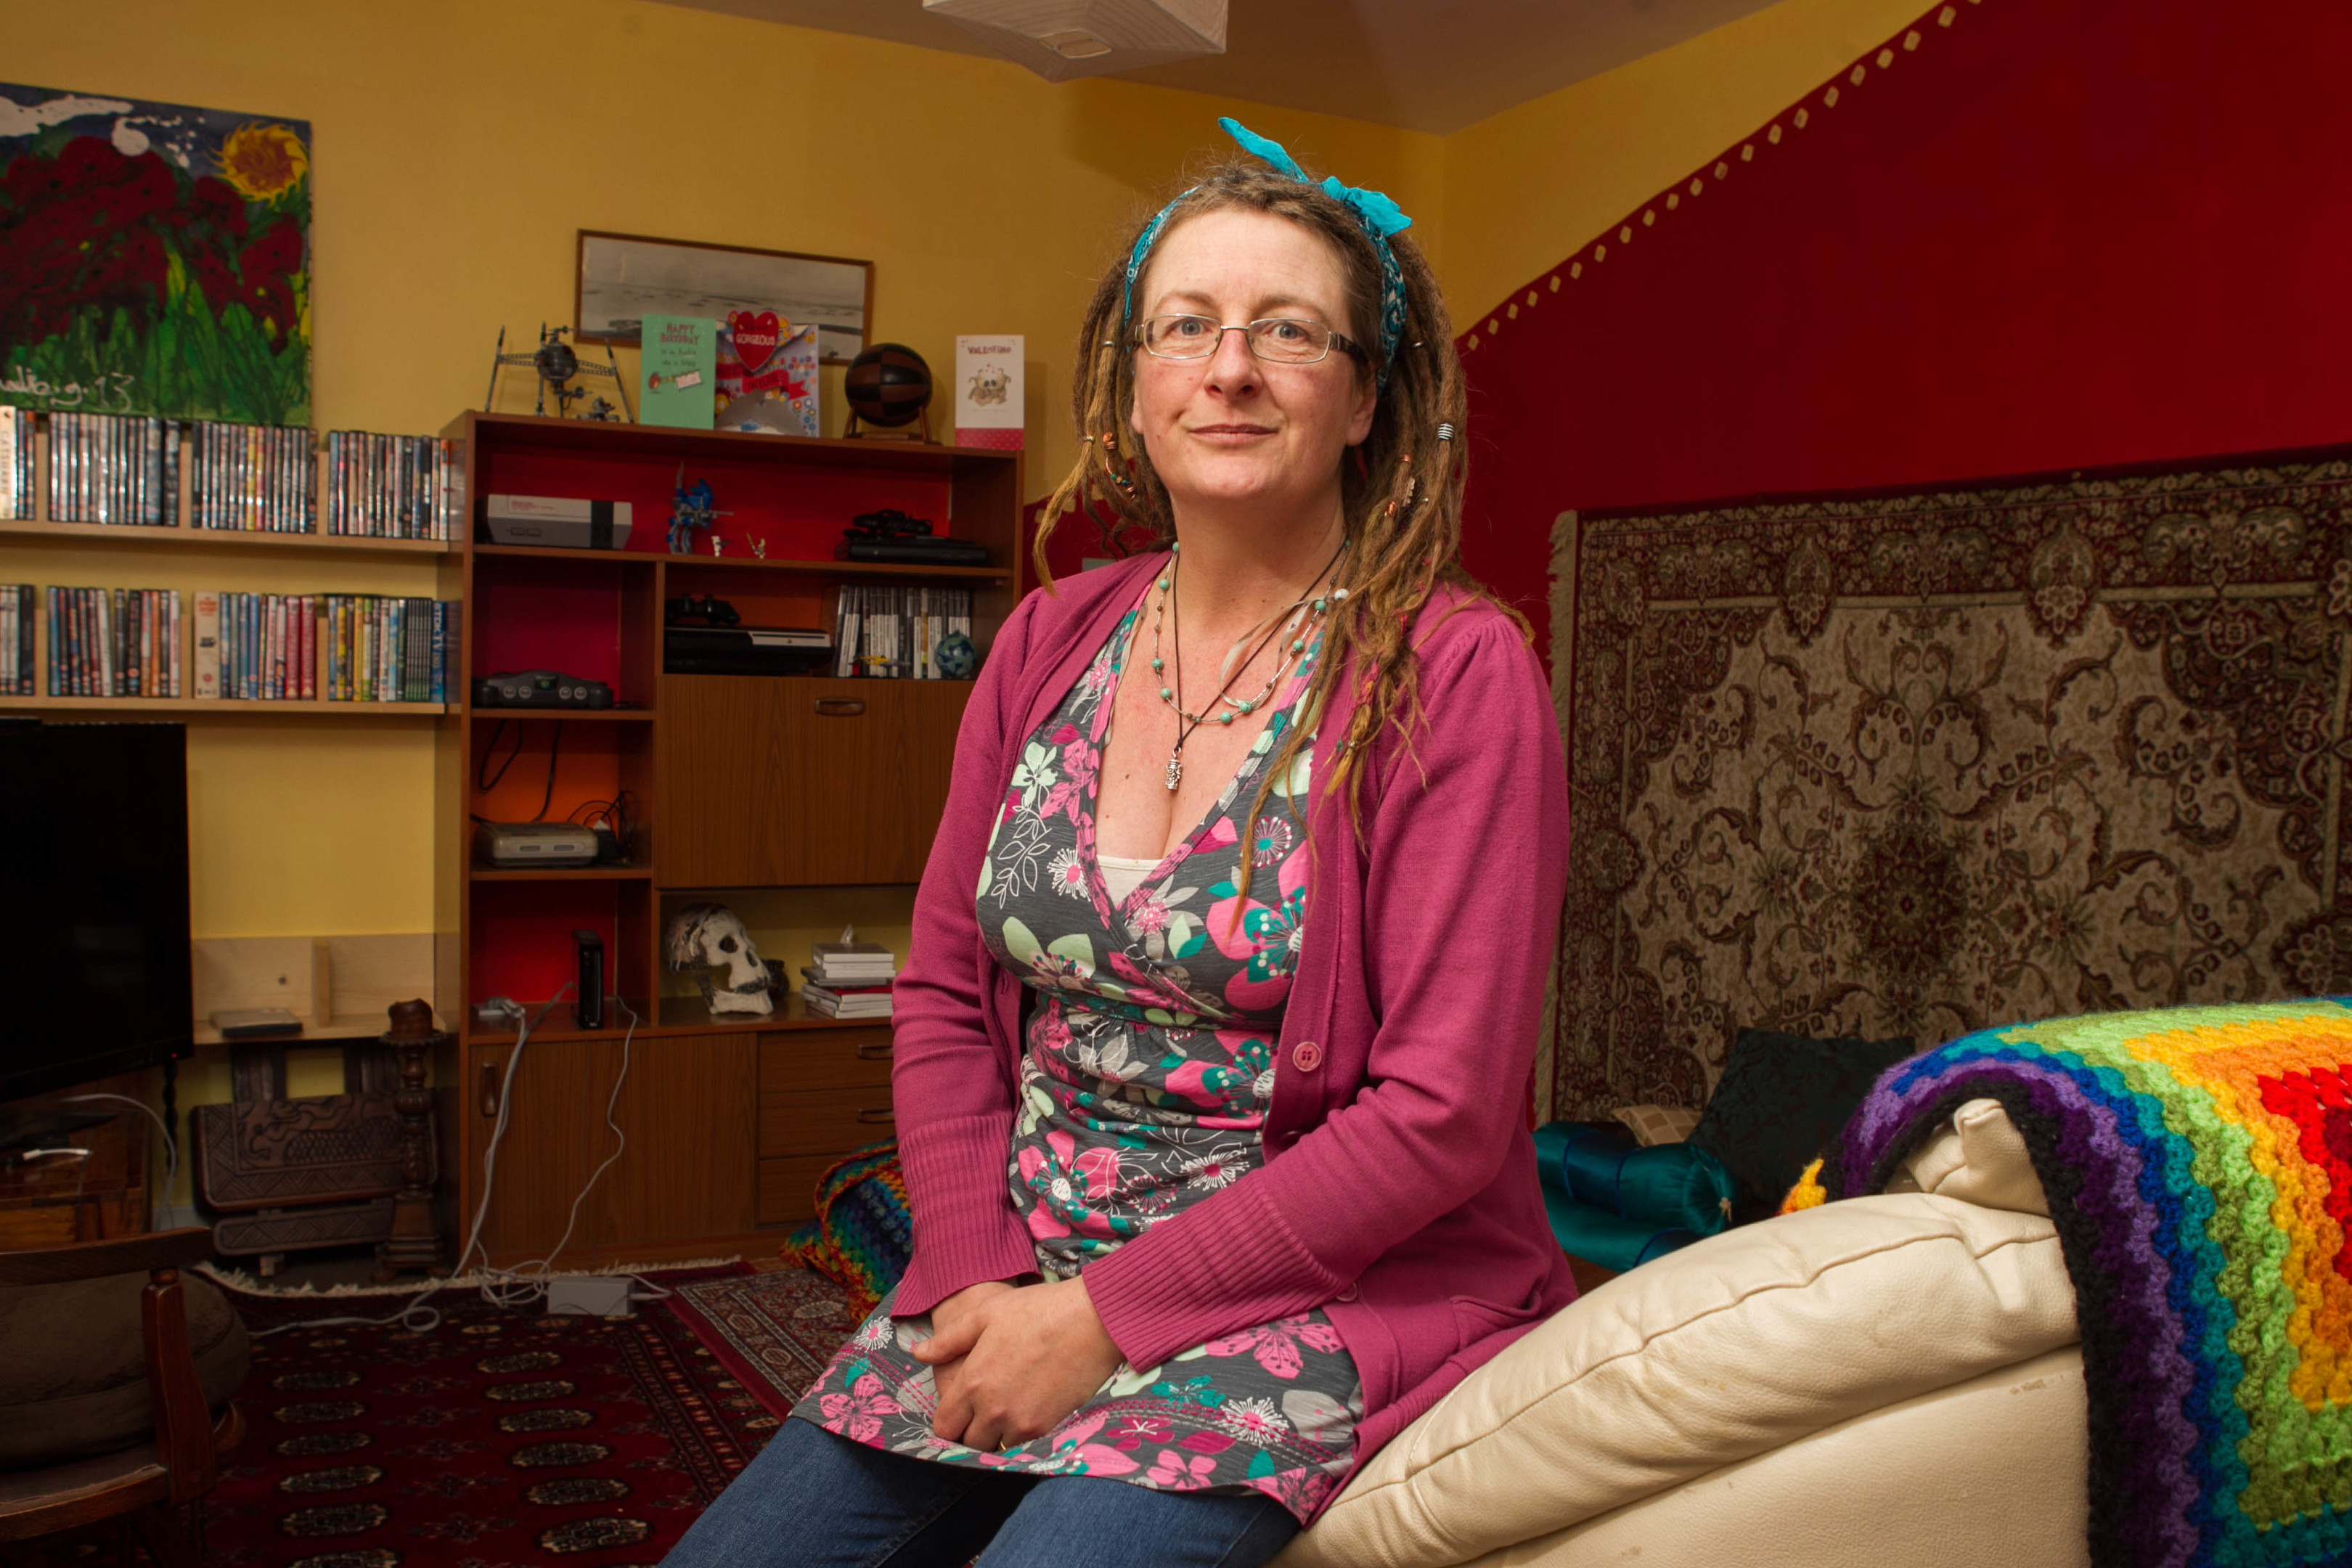 Louise Gourley has given up a luxury lifestle to live in an ex council flat (Chris Austin)